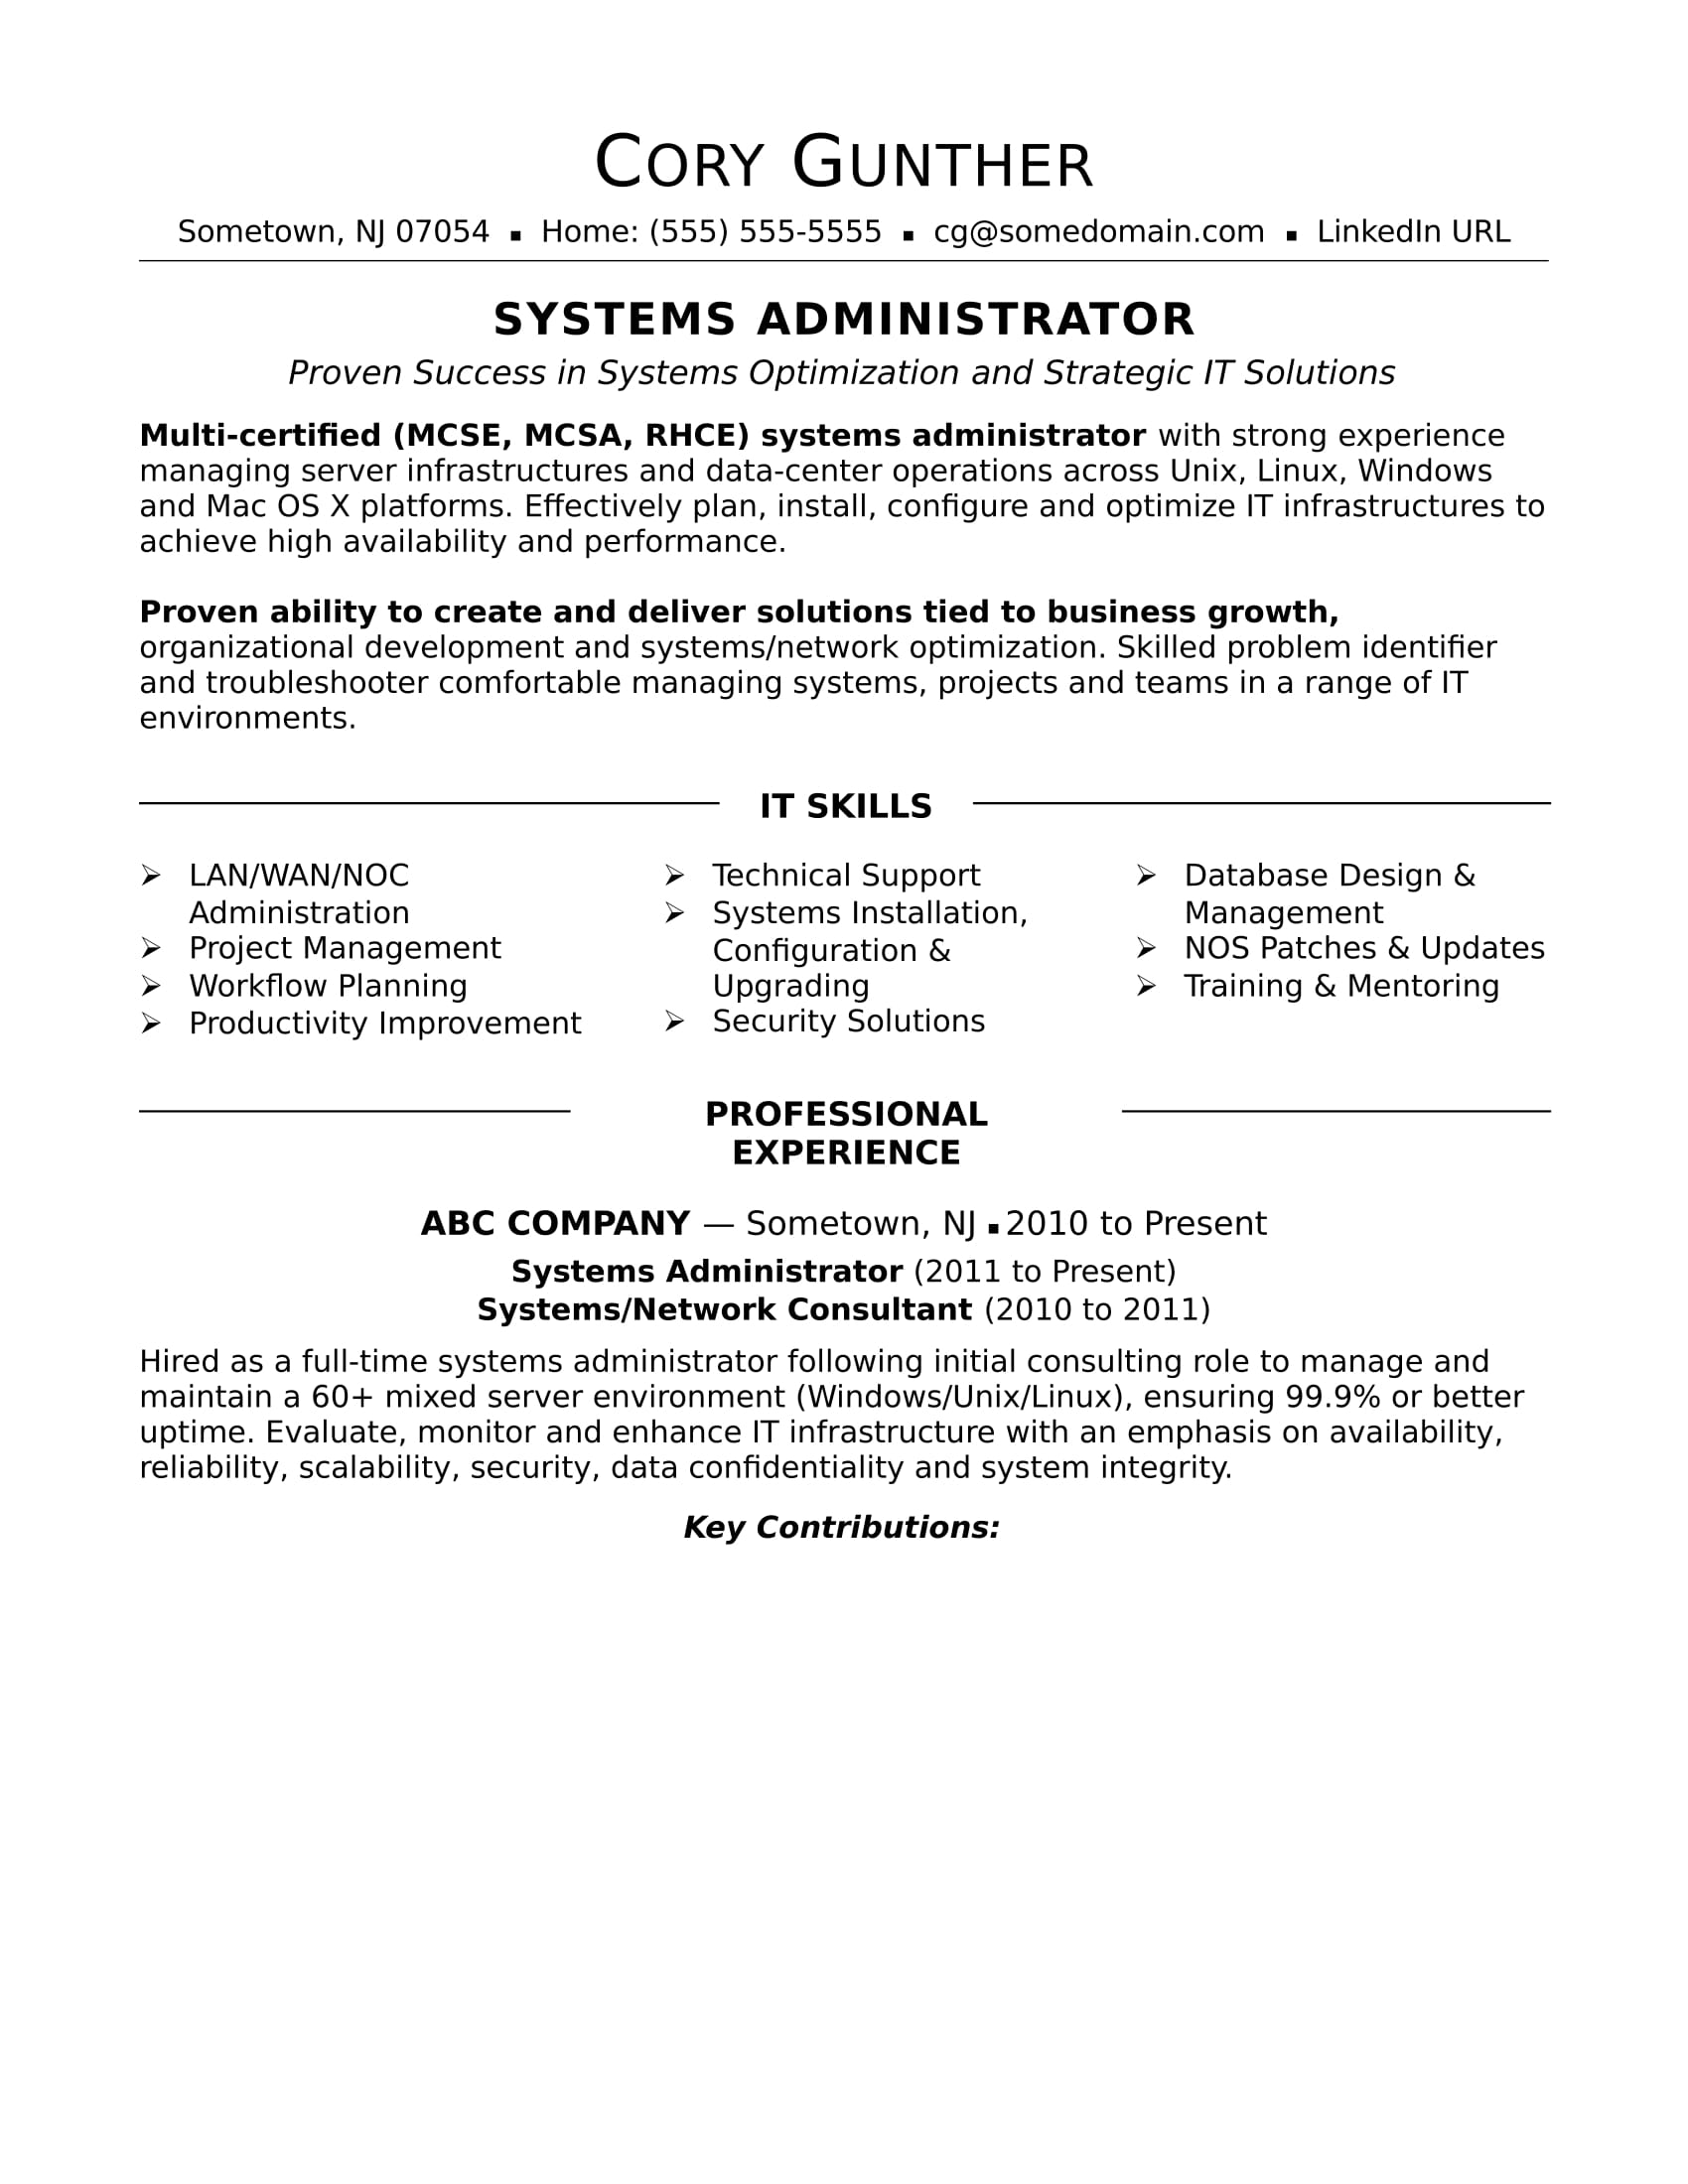 sample resume for an experienced systems administrator - System Administration Sample Resume